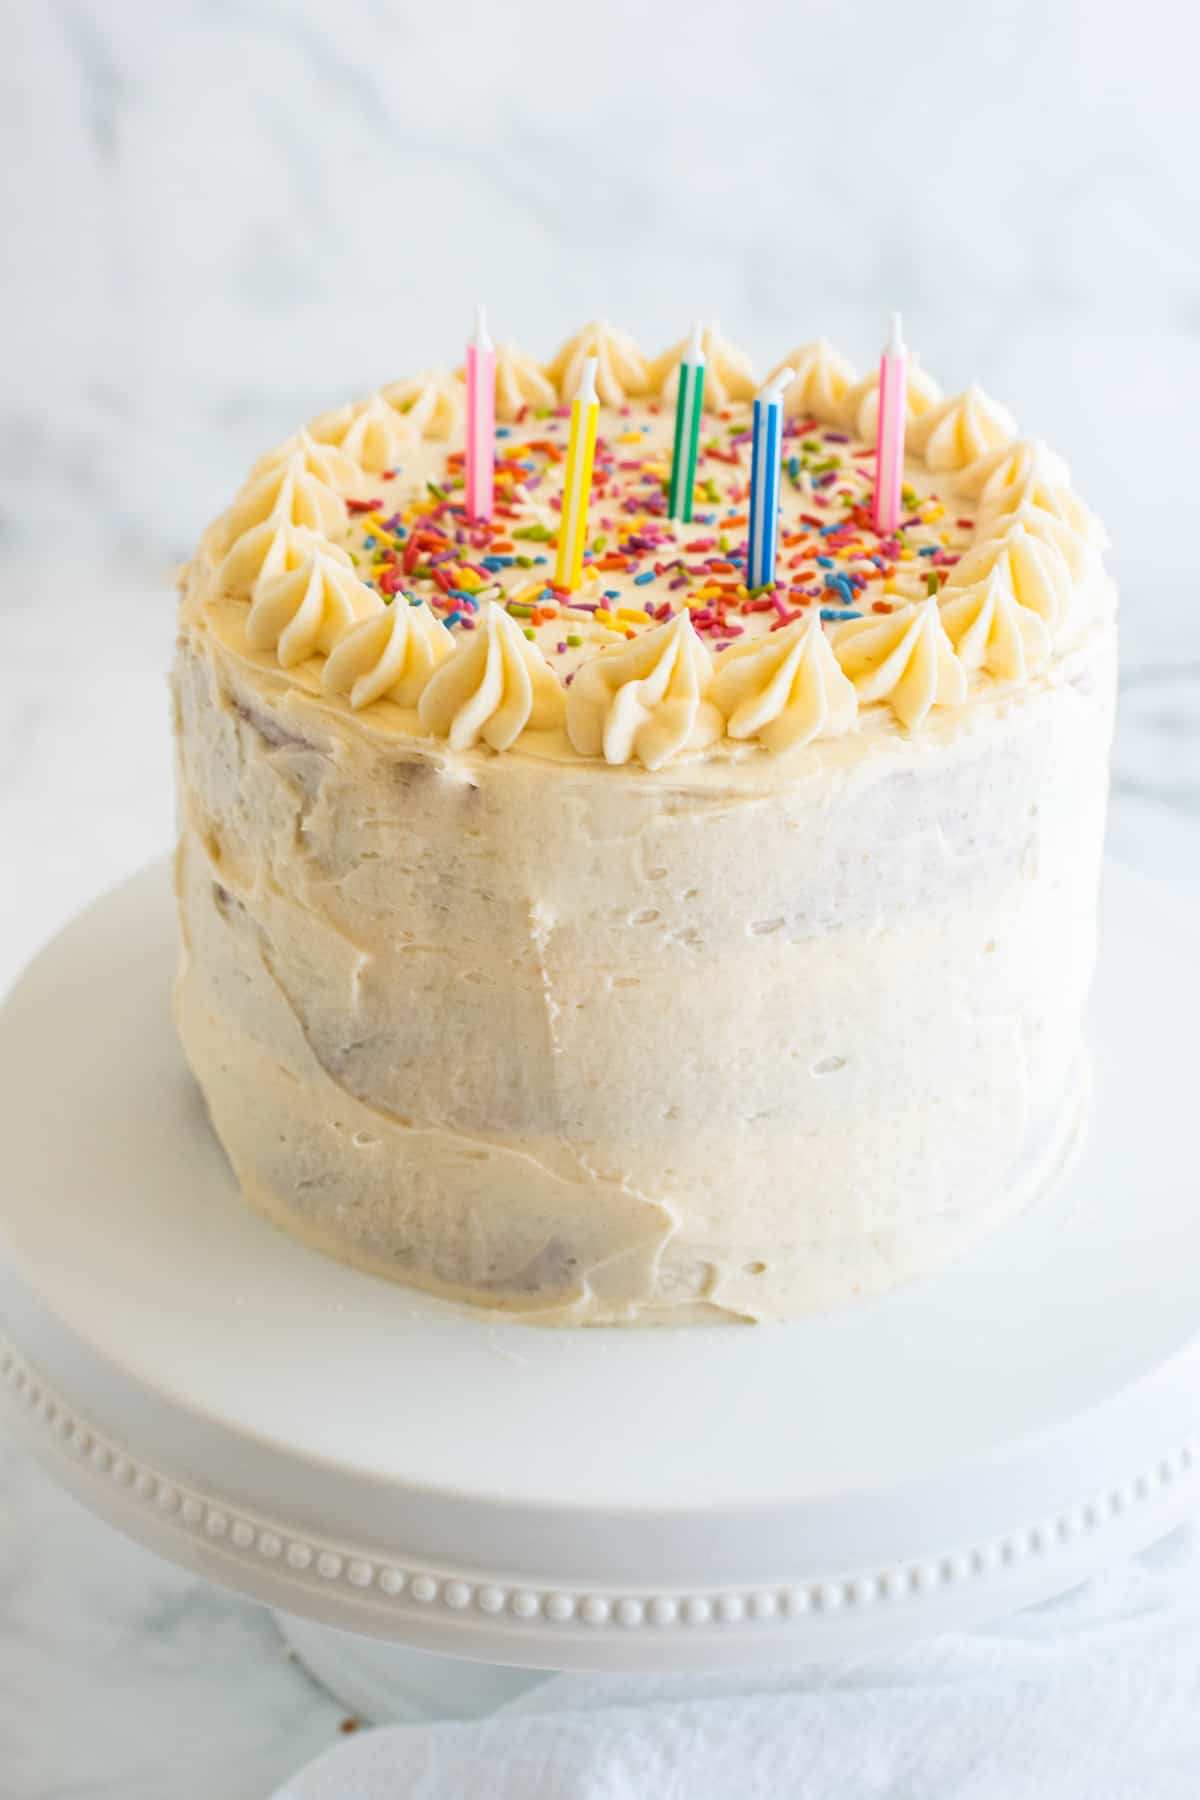 a vegan birthday cake with sprinkles and candles on a cake plate